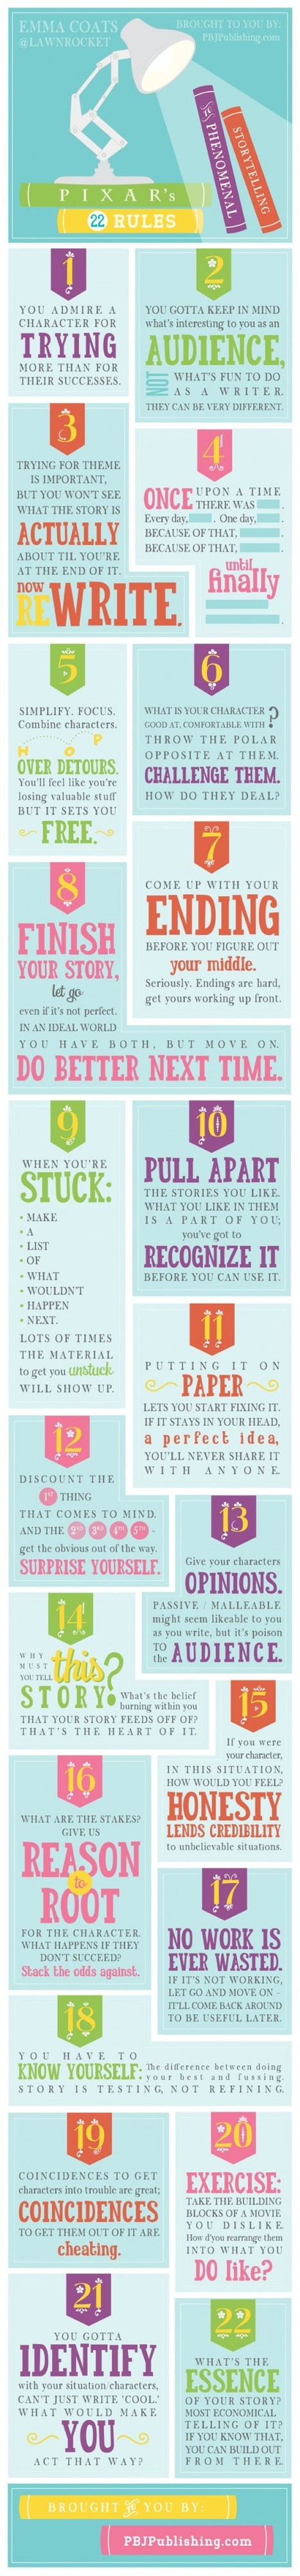 Pixar's 22 Rules to Phenomenal Storytelling [INFOGRAPHIC] | Tips & Web Design | Scoop.it